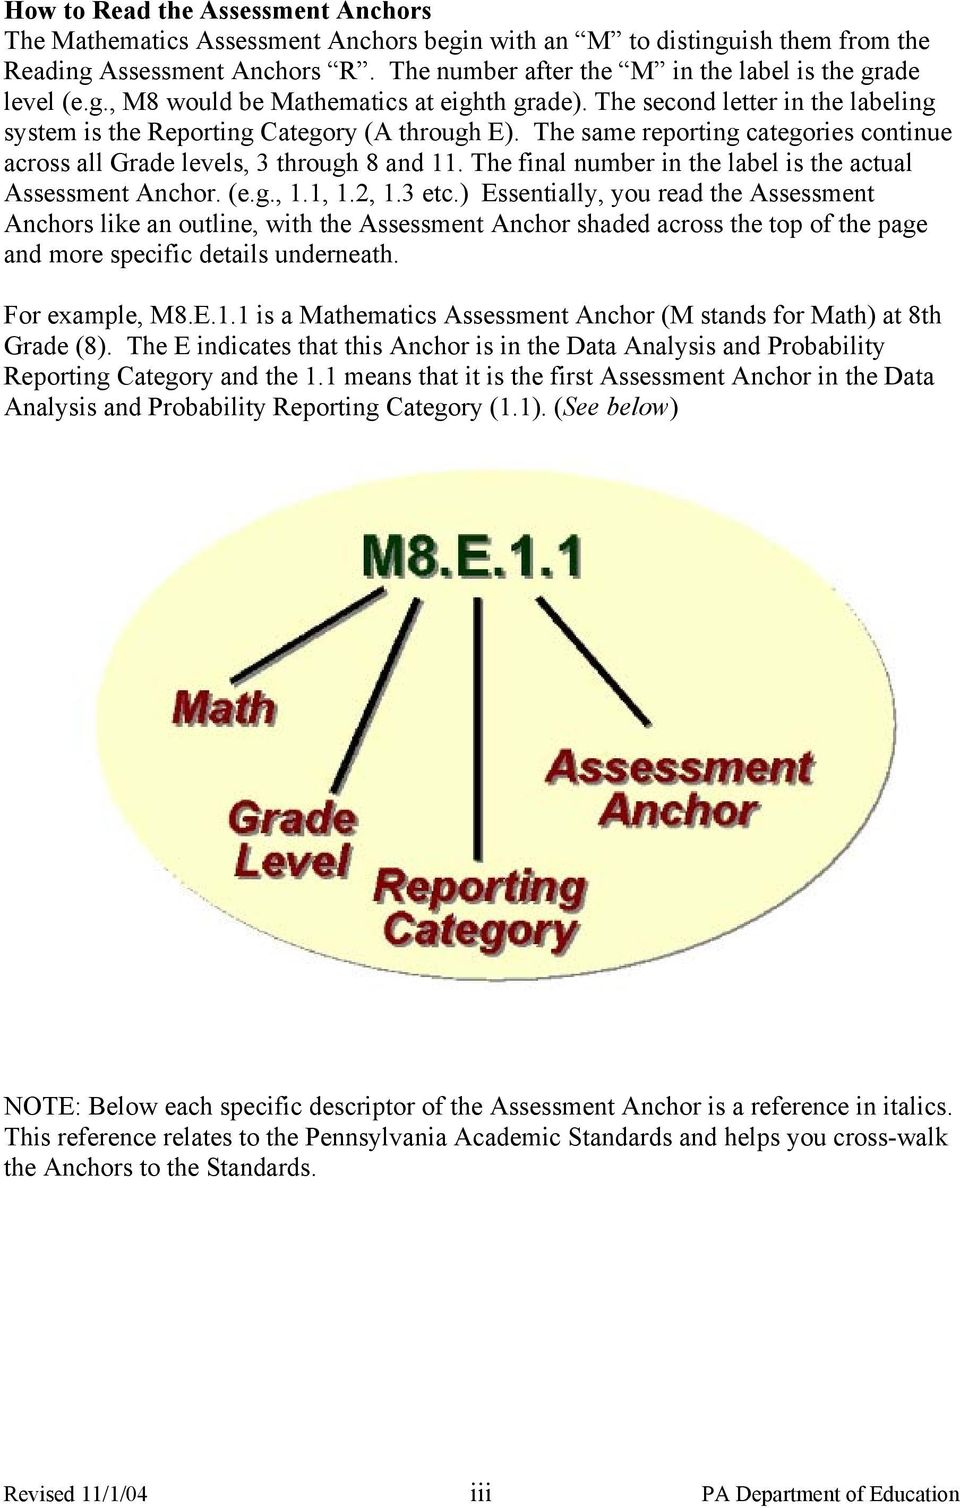 The same reporting categories continue across all Grade levels, 3 through 8 and 11. The final number in the label is the actual Assessment Anchor. (e.g., 1.1, 1.2, 1.3 etc.